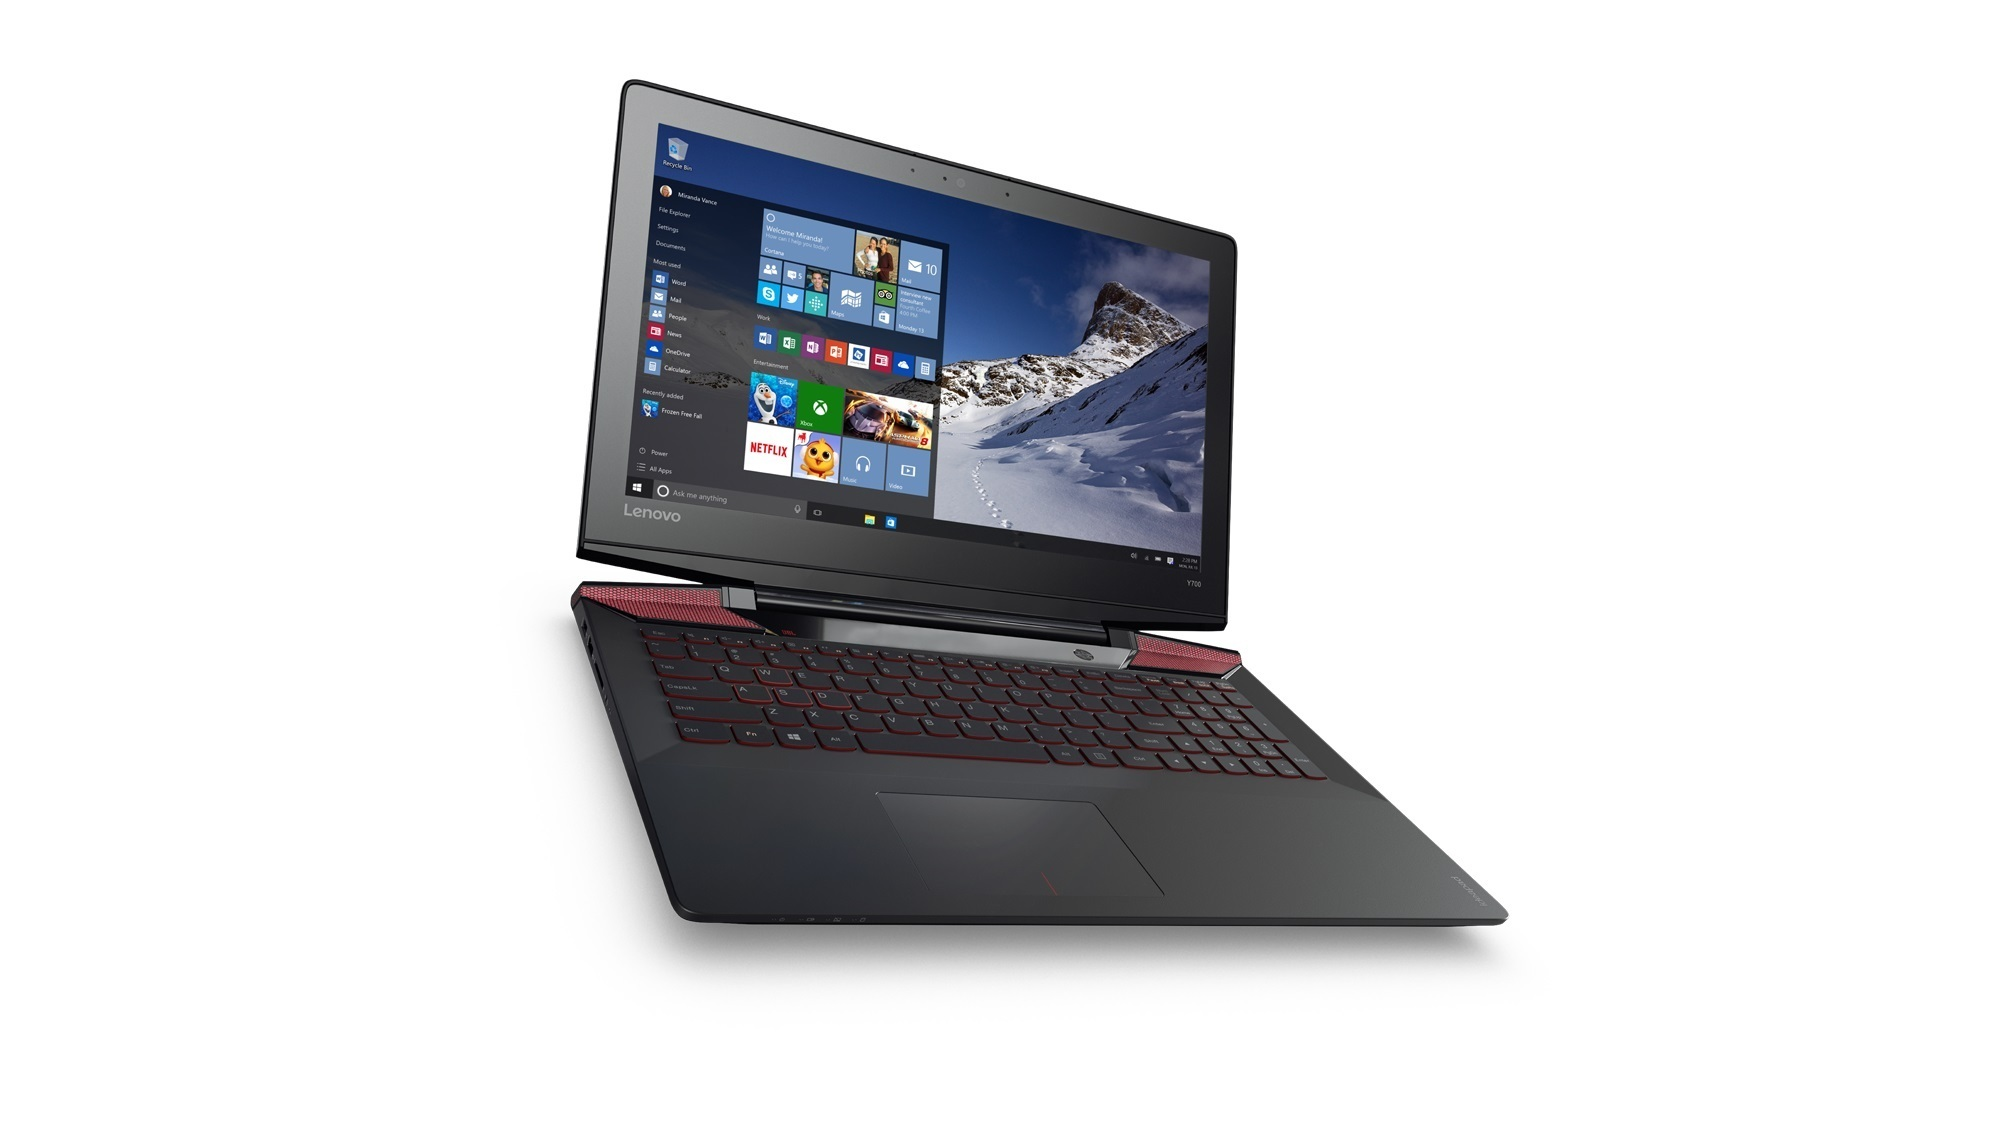 the lenovo ideapad y700 - photo #7